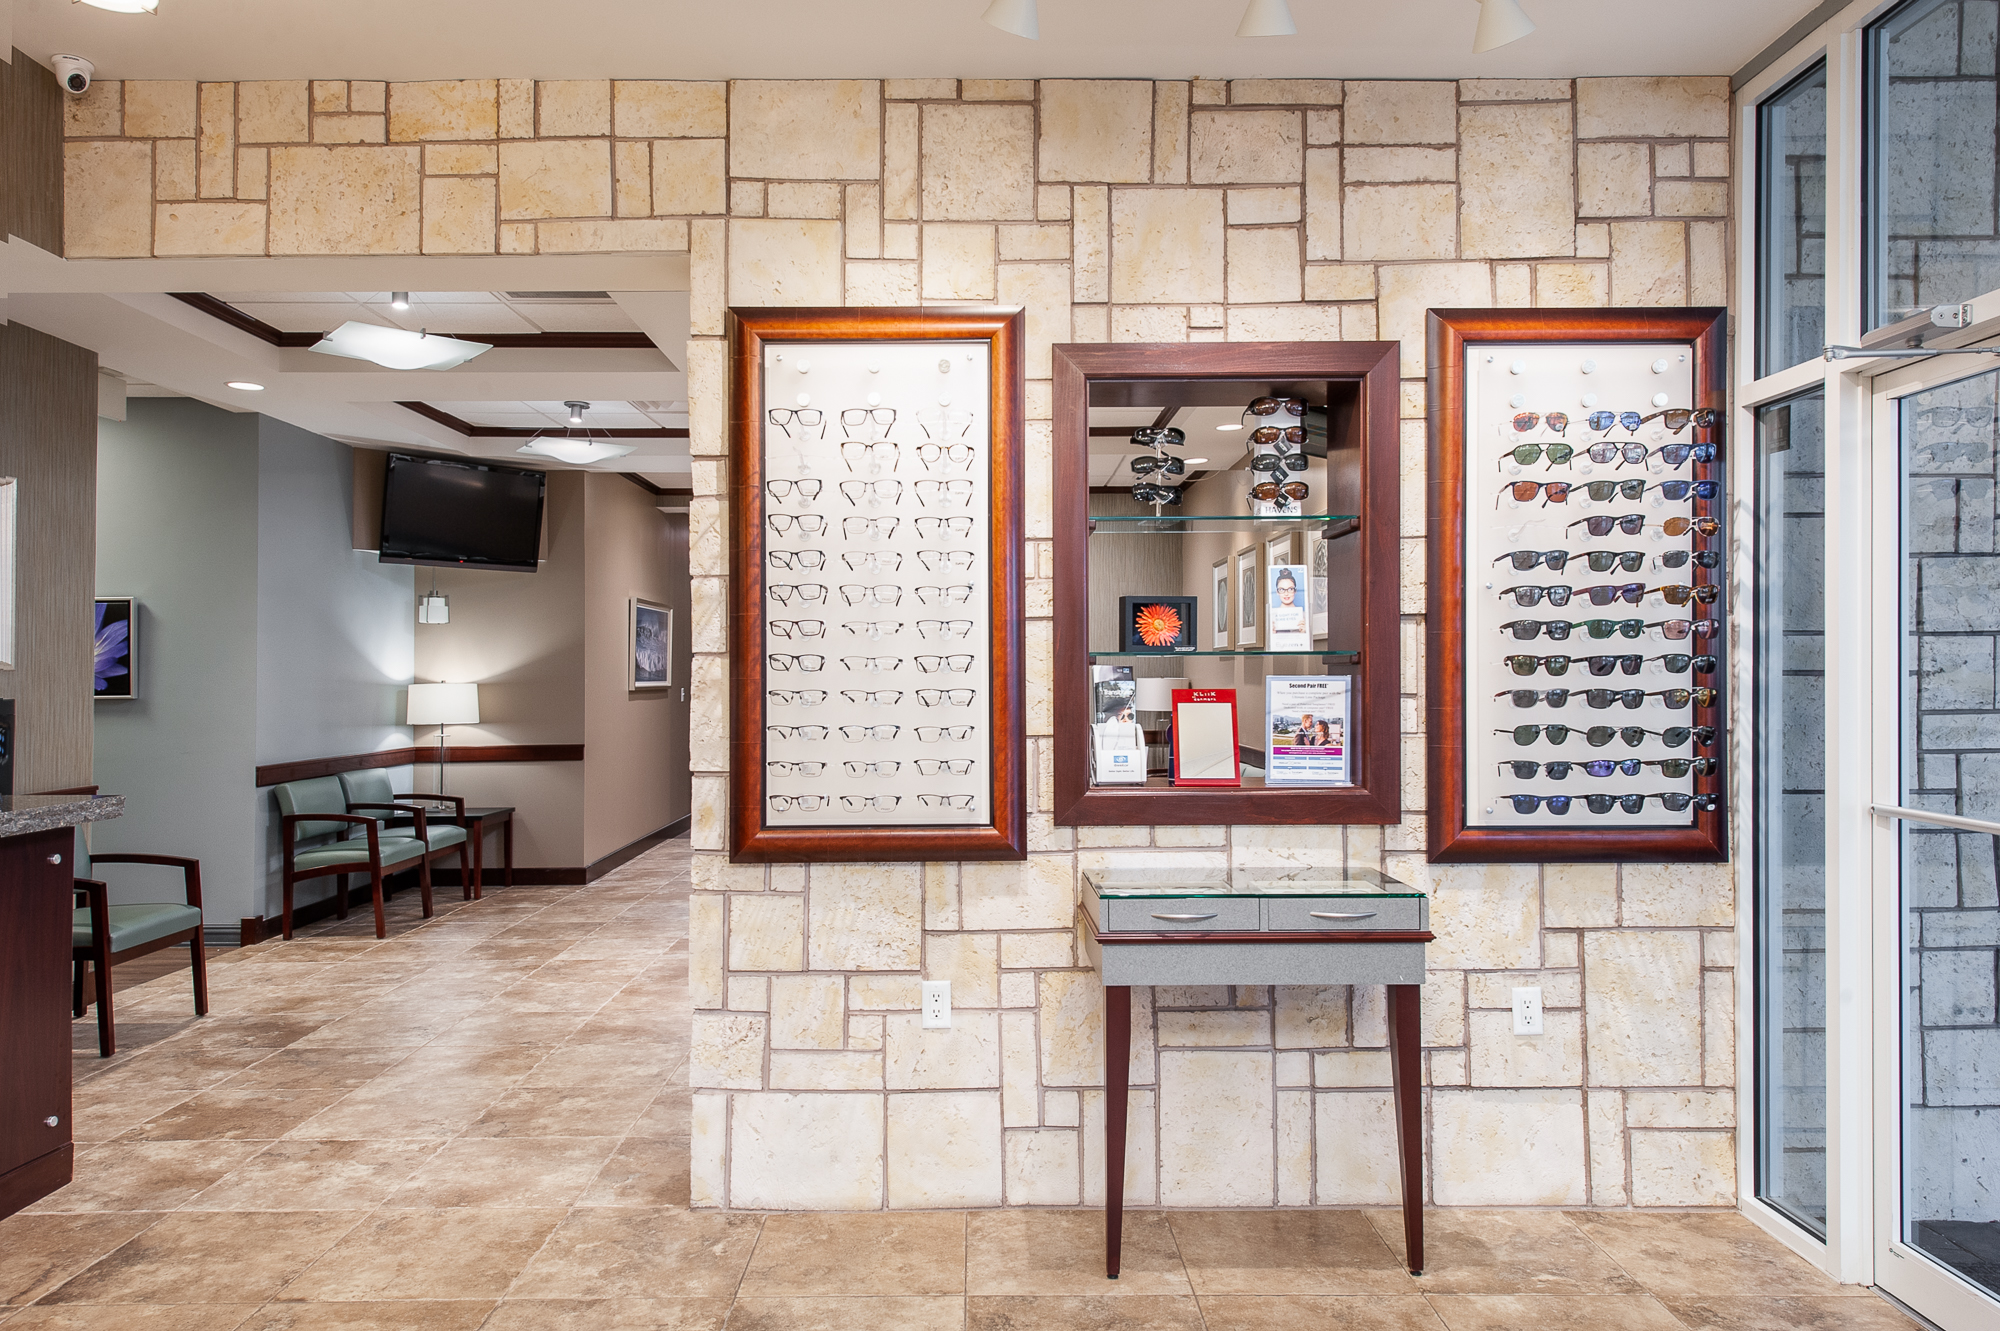 Micamy Design Studio_Interior Design_Clay Eye_Mandarin_Opthamology_Commercial_Office_Medical_Eye Care_Renovation_Crossville_Interiors_Artwork_Coastal_Crossville_Eykon7.jpg